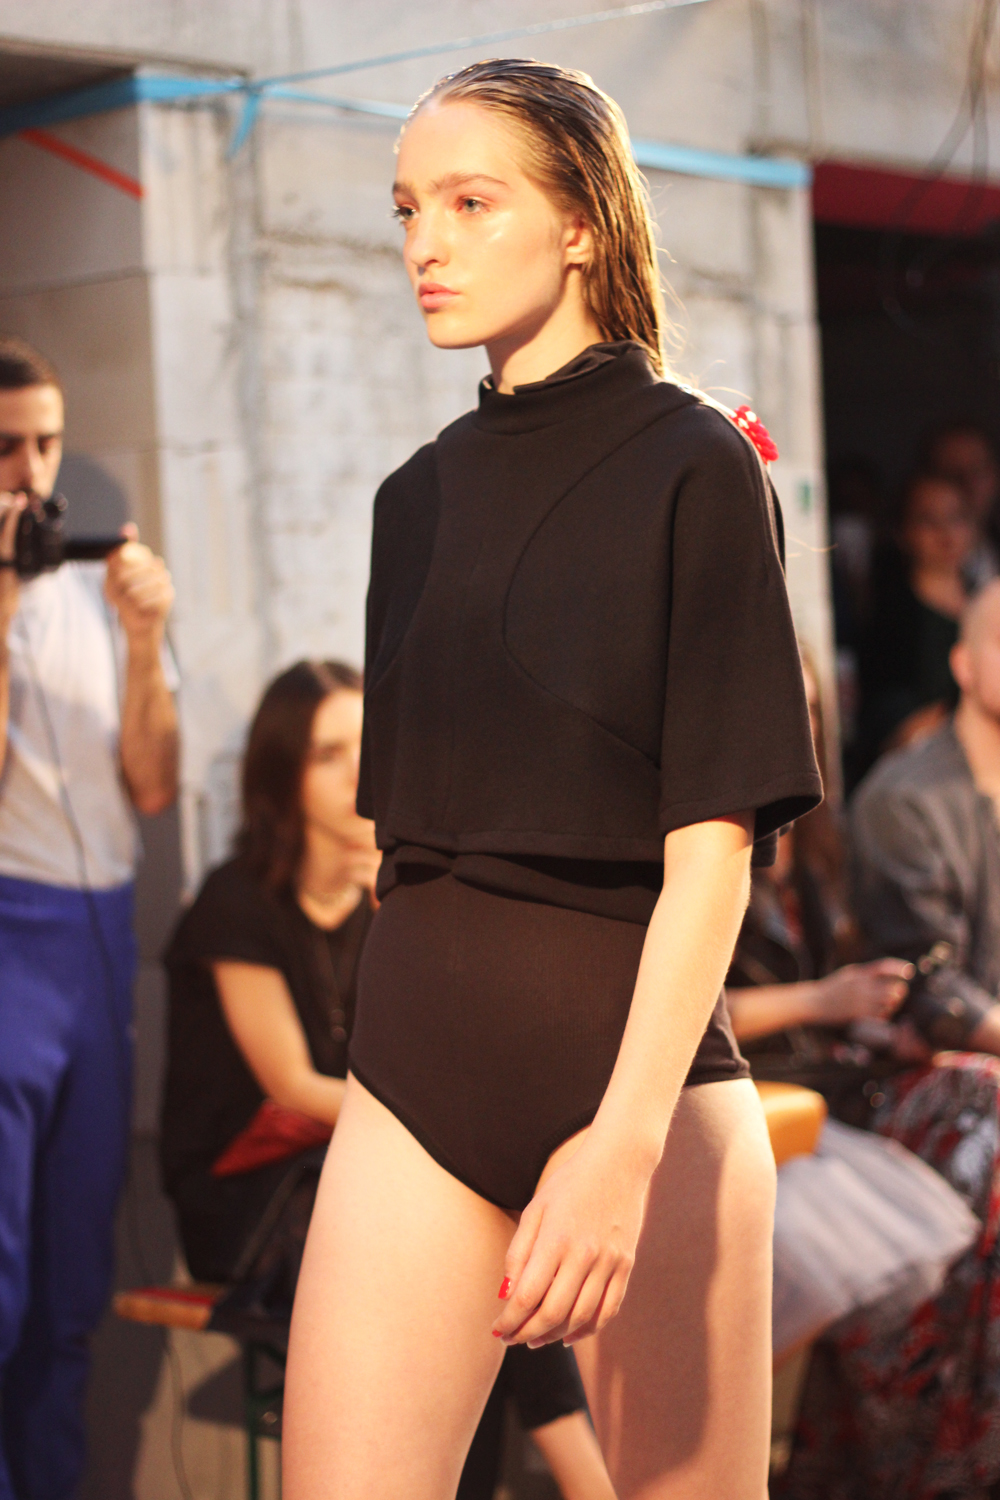 fatimayarie-berlinfashionweek-samplecm-runway-black-body-img_4050